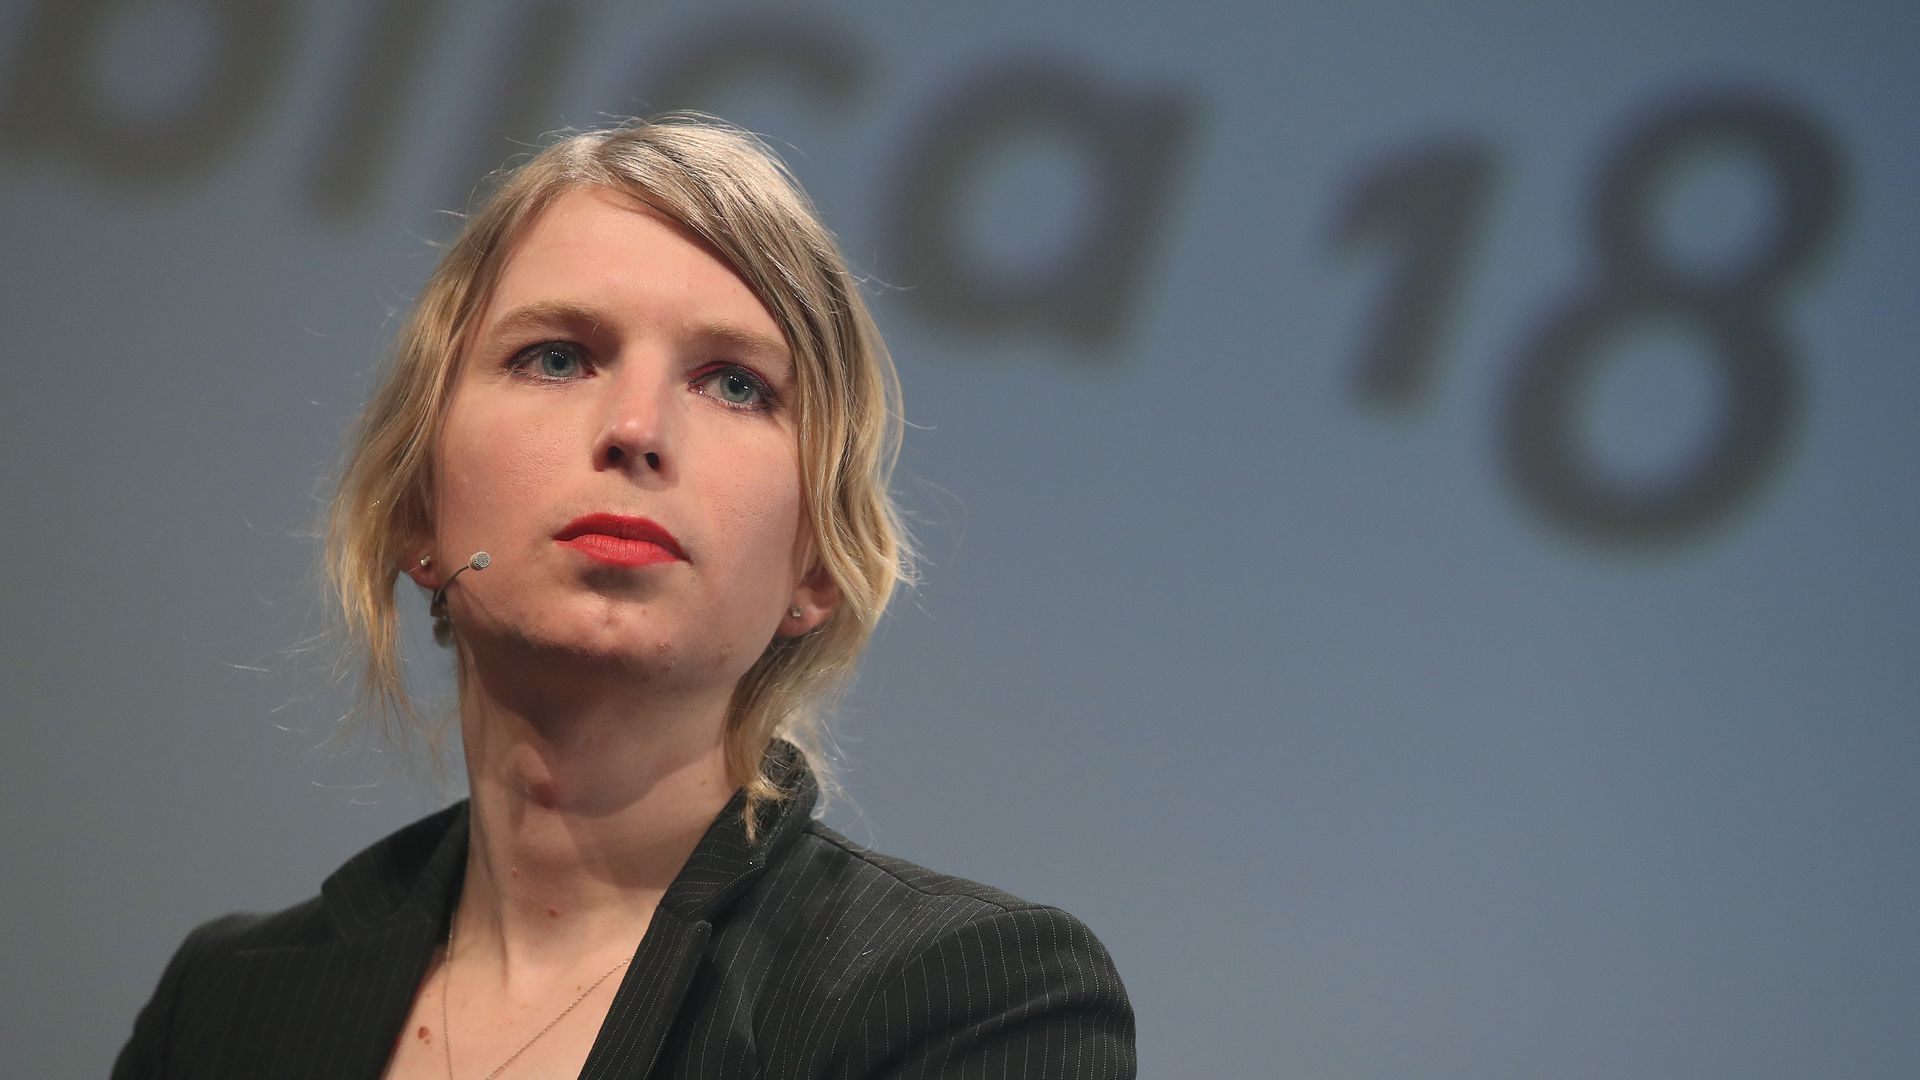 Support Chelsea Manning!